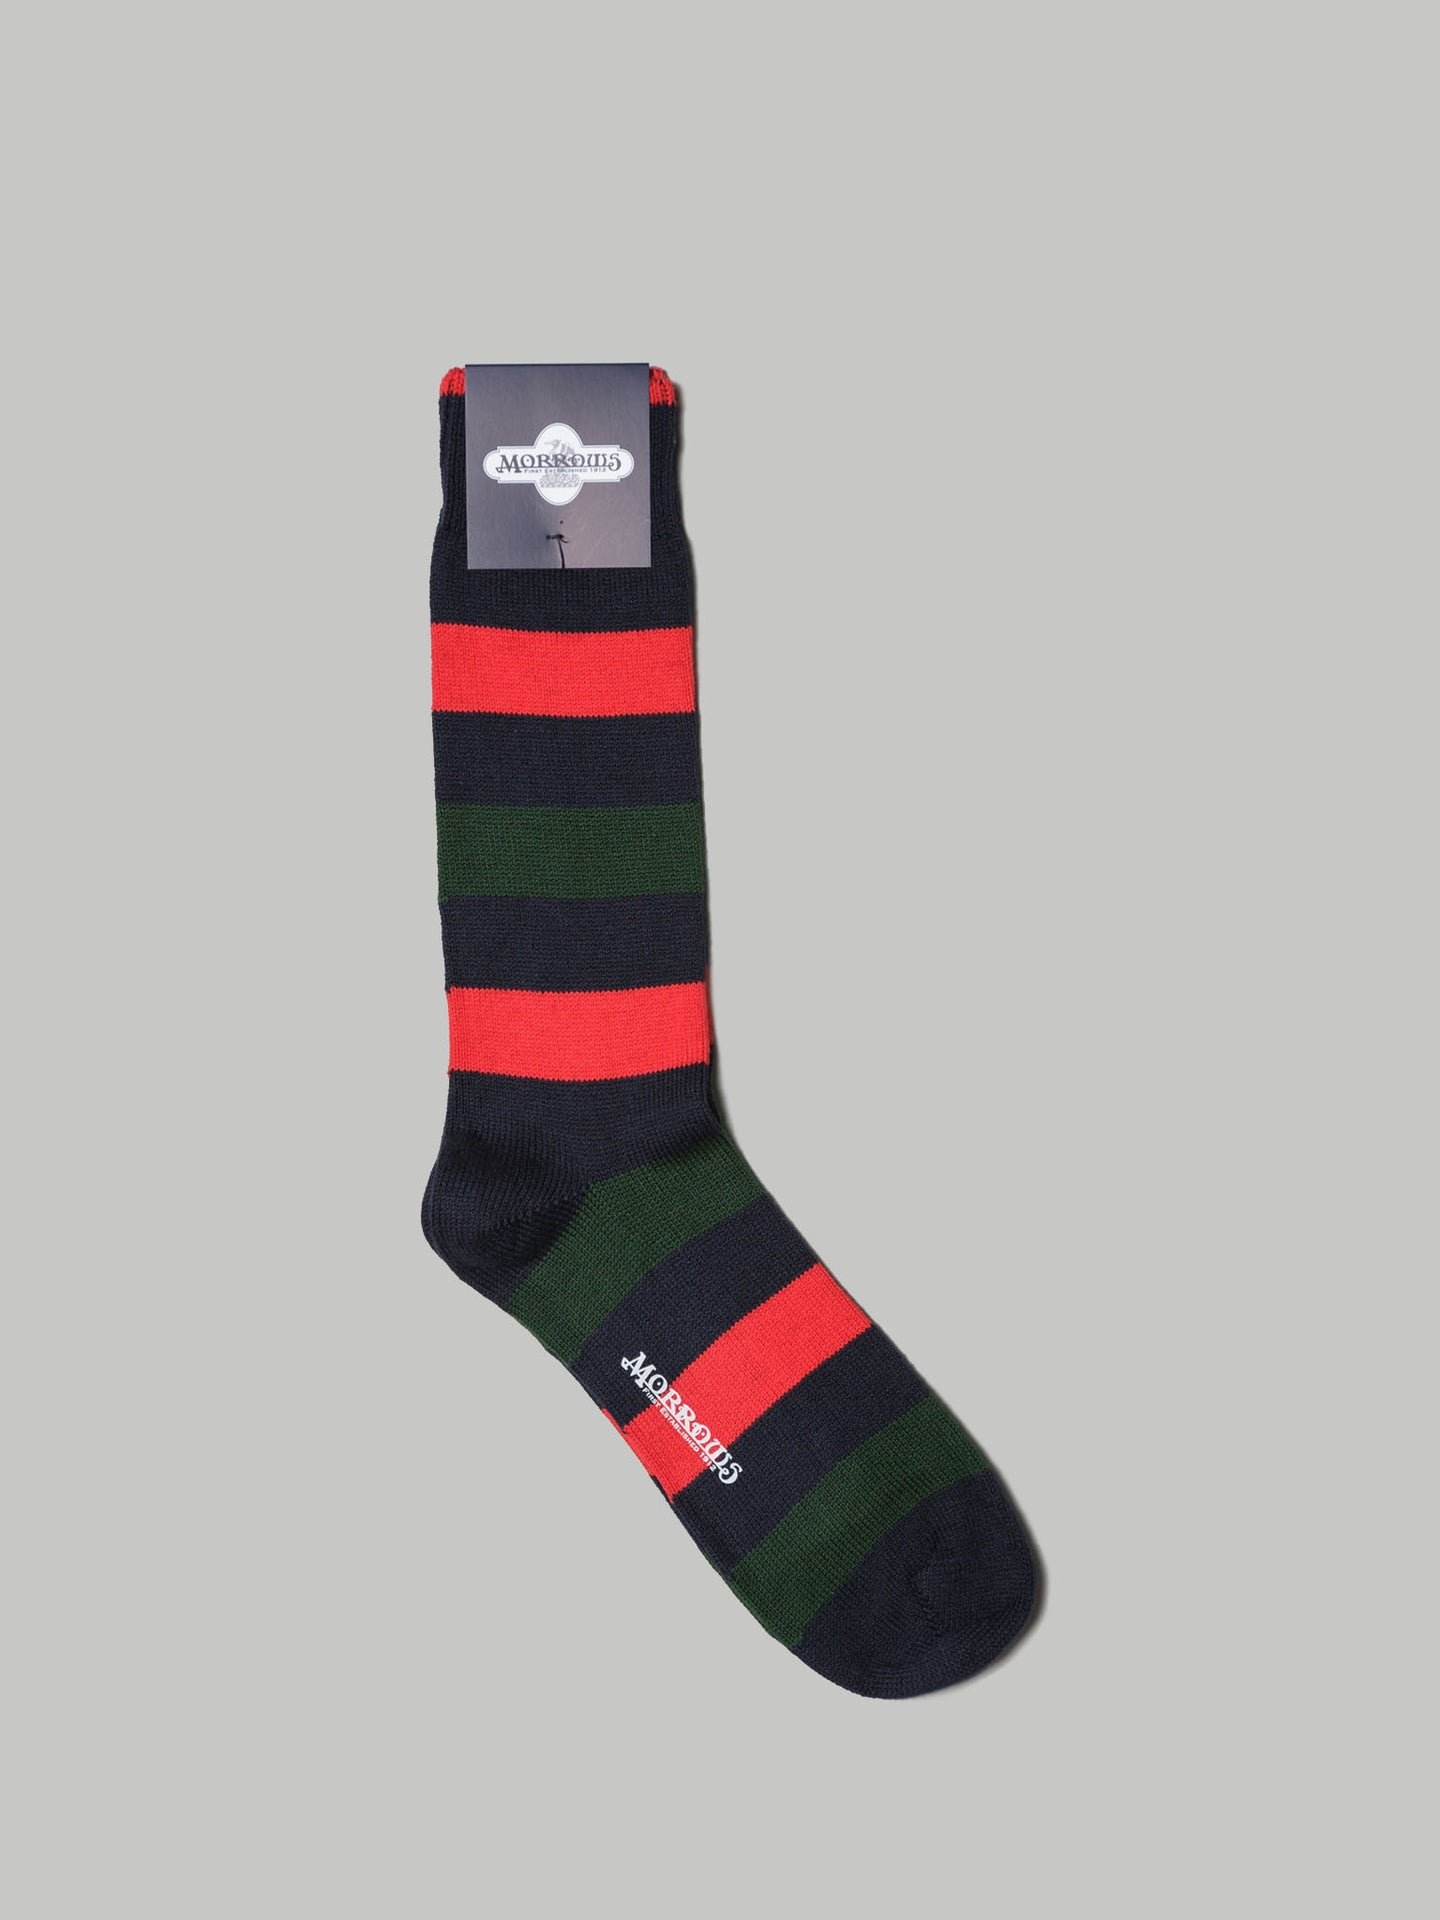 Morrows ABF Broad Stripe Sock (Navy, Brigade, Confur) - Union 22